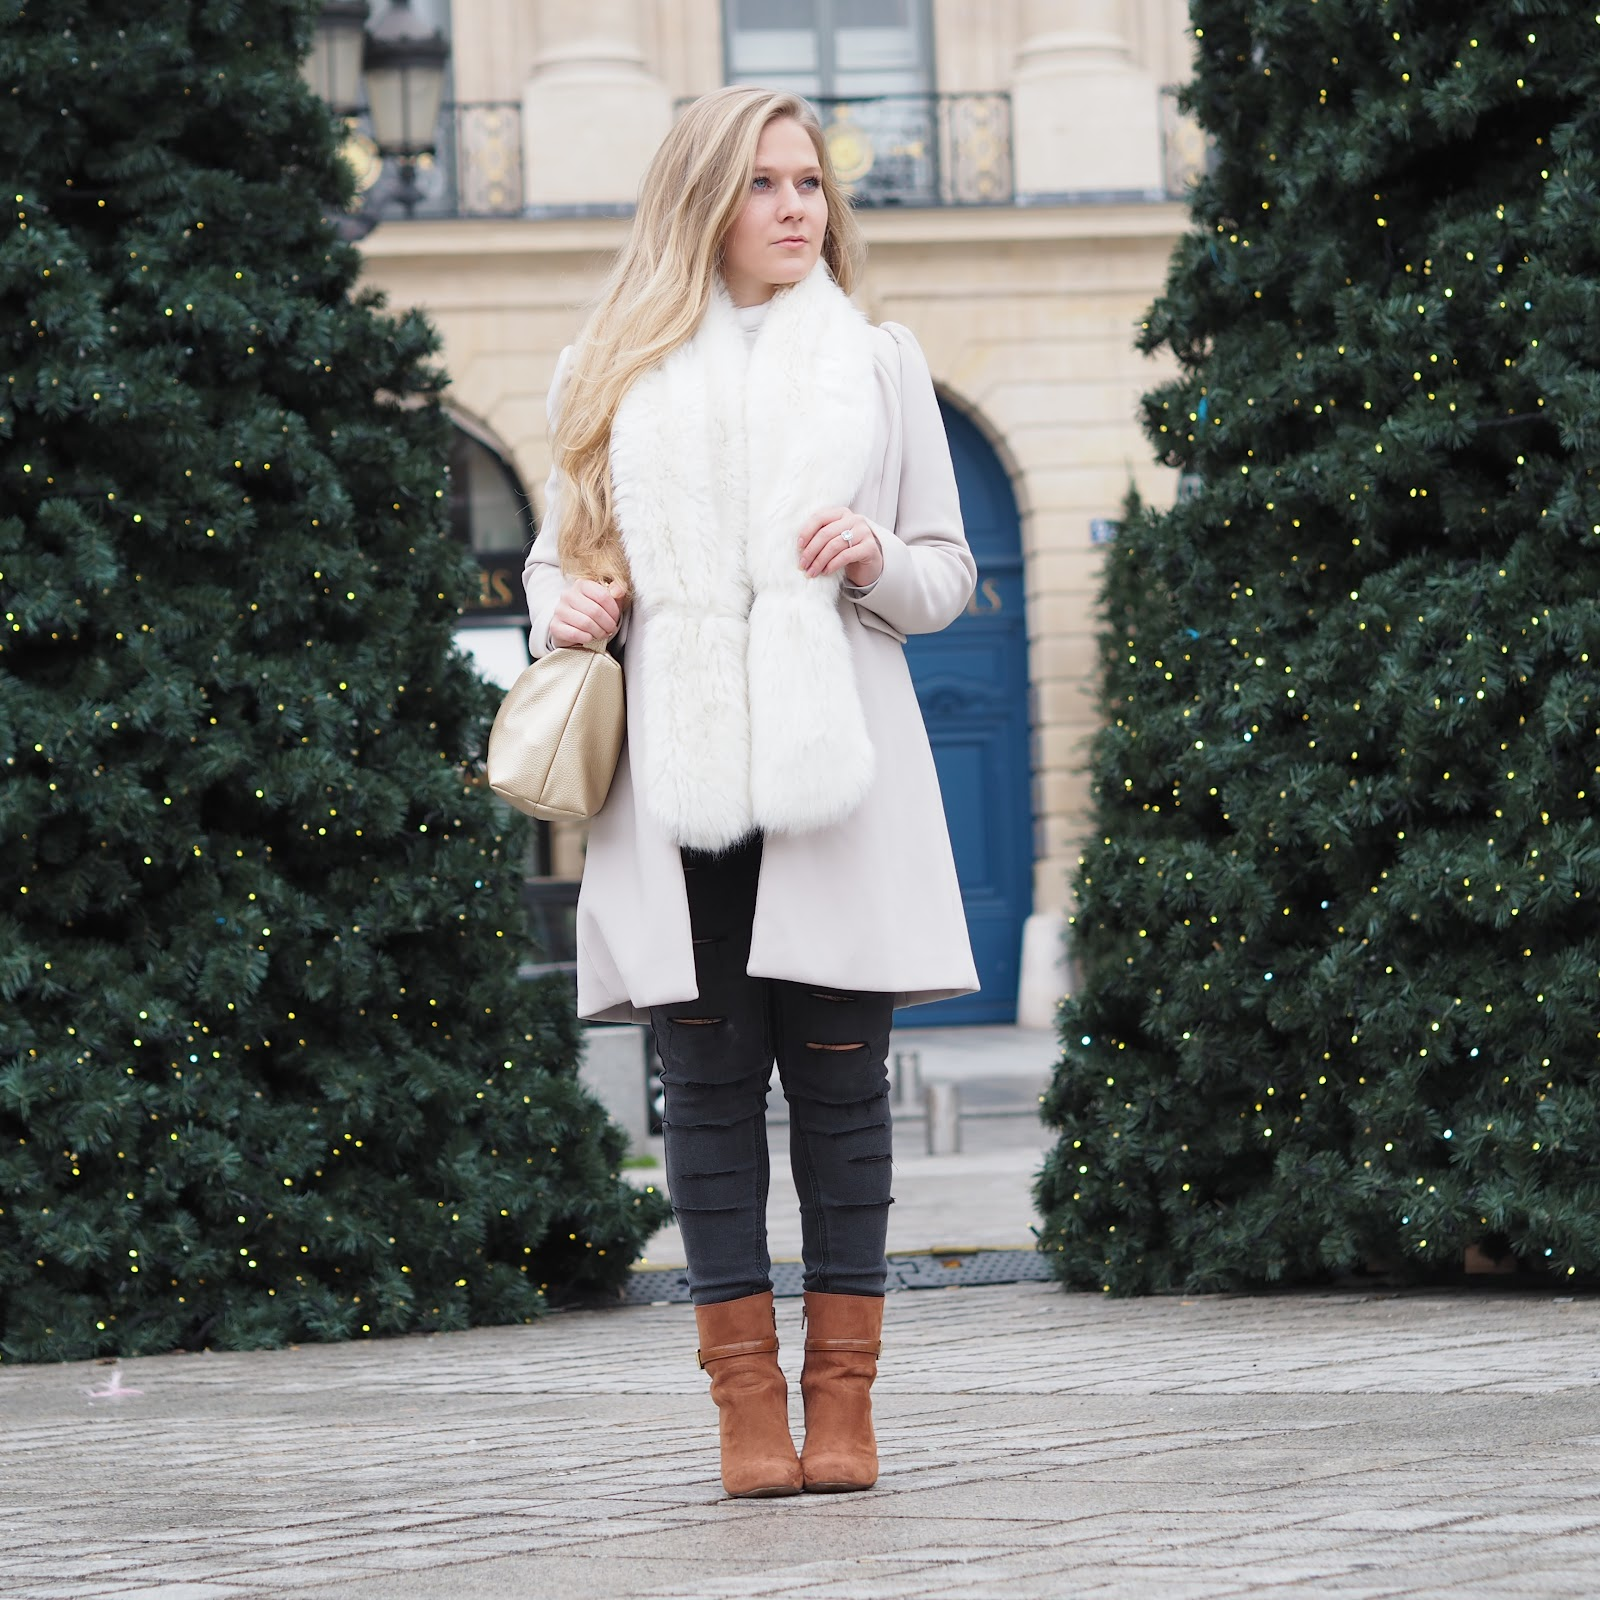 Blonde girl standing between christmas trees in Place de Vendome, Paris